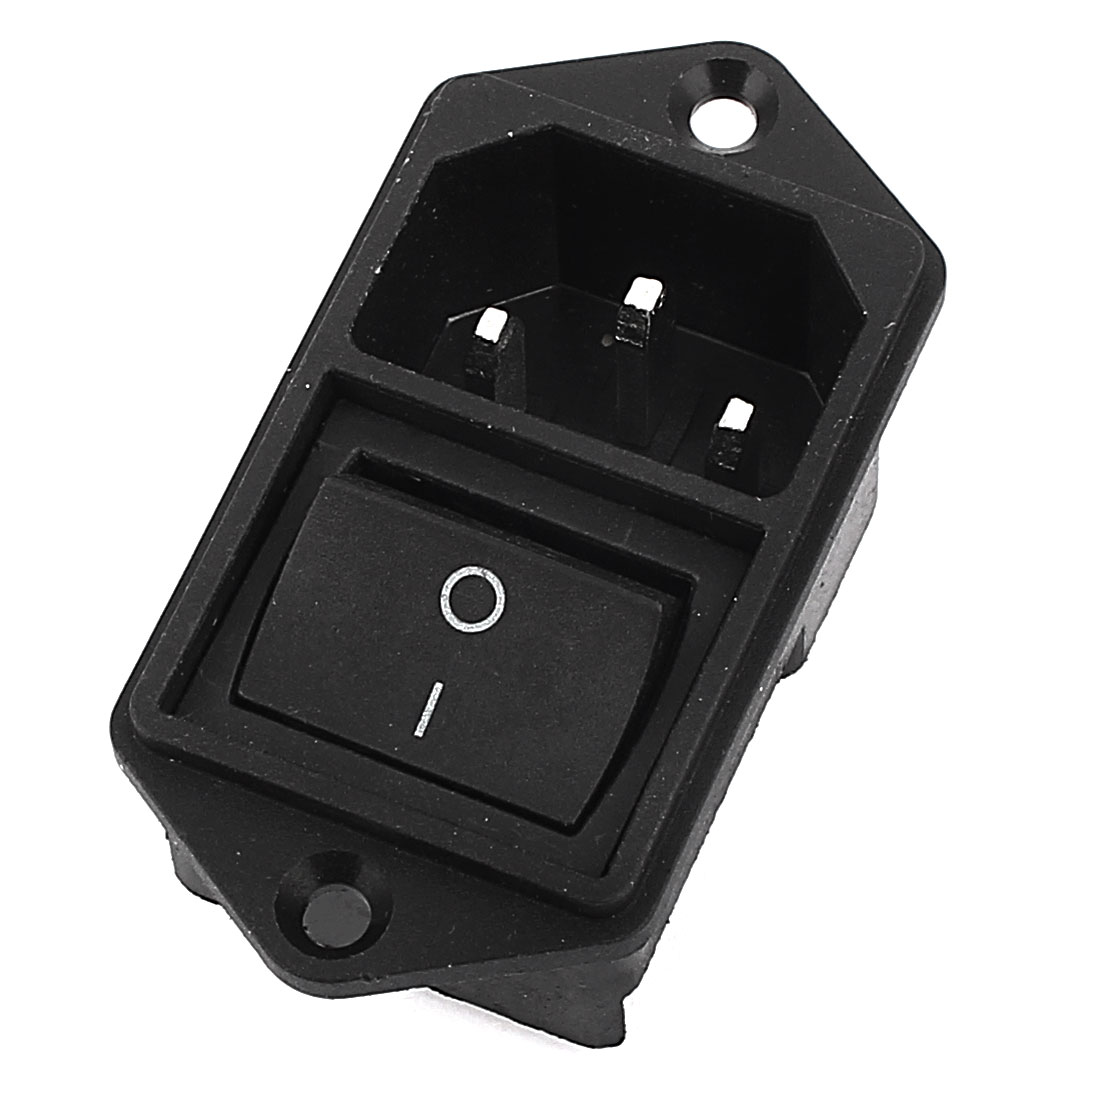 IEC320 C14 AC 250V 15A Boat Rocker Switch Power Inlet Connector